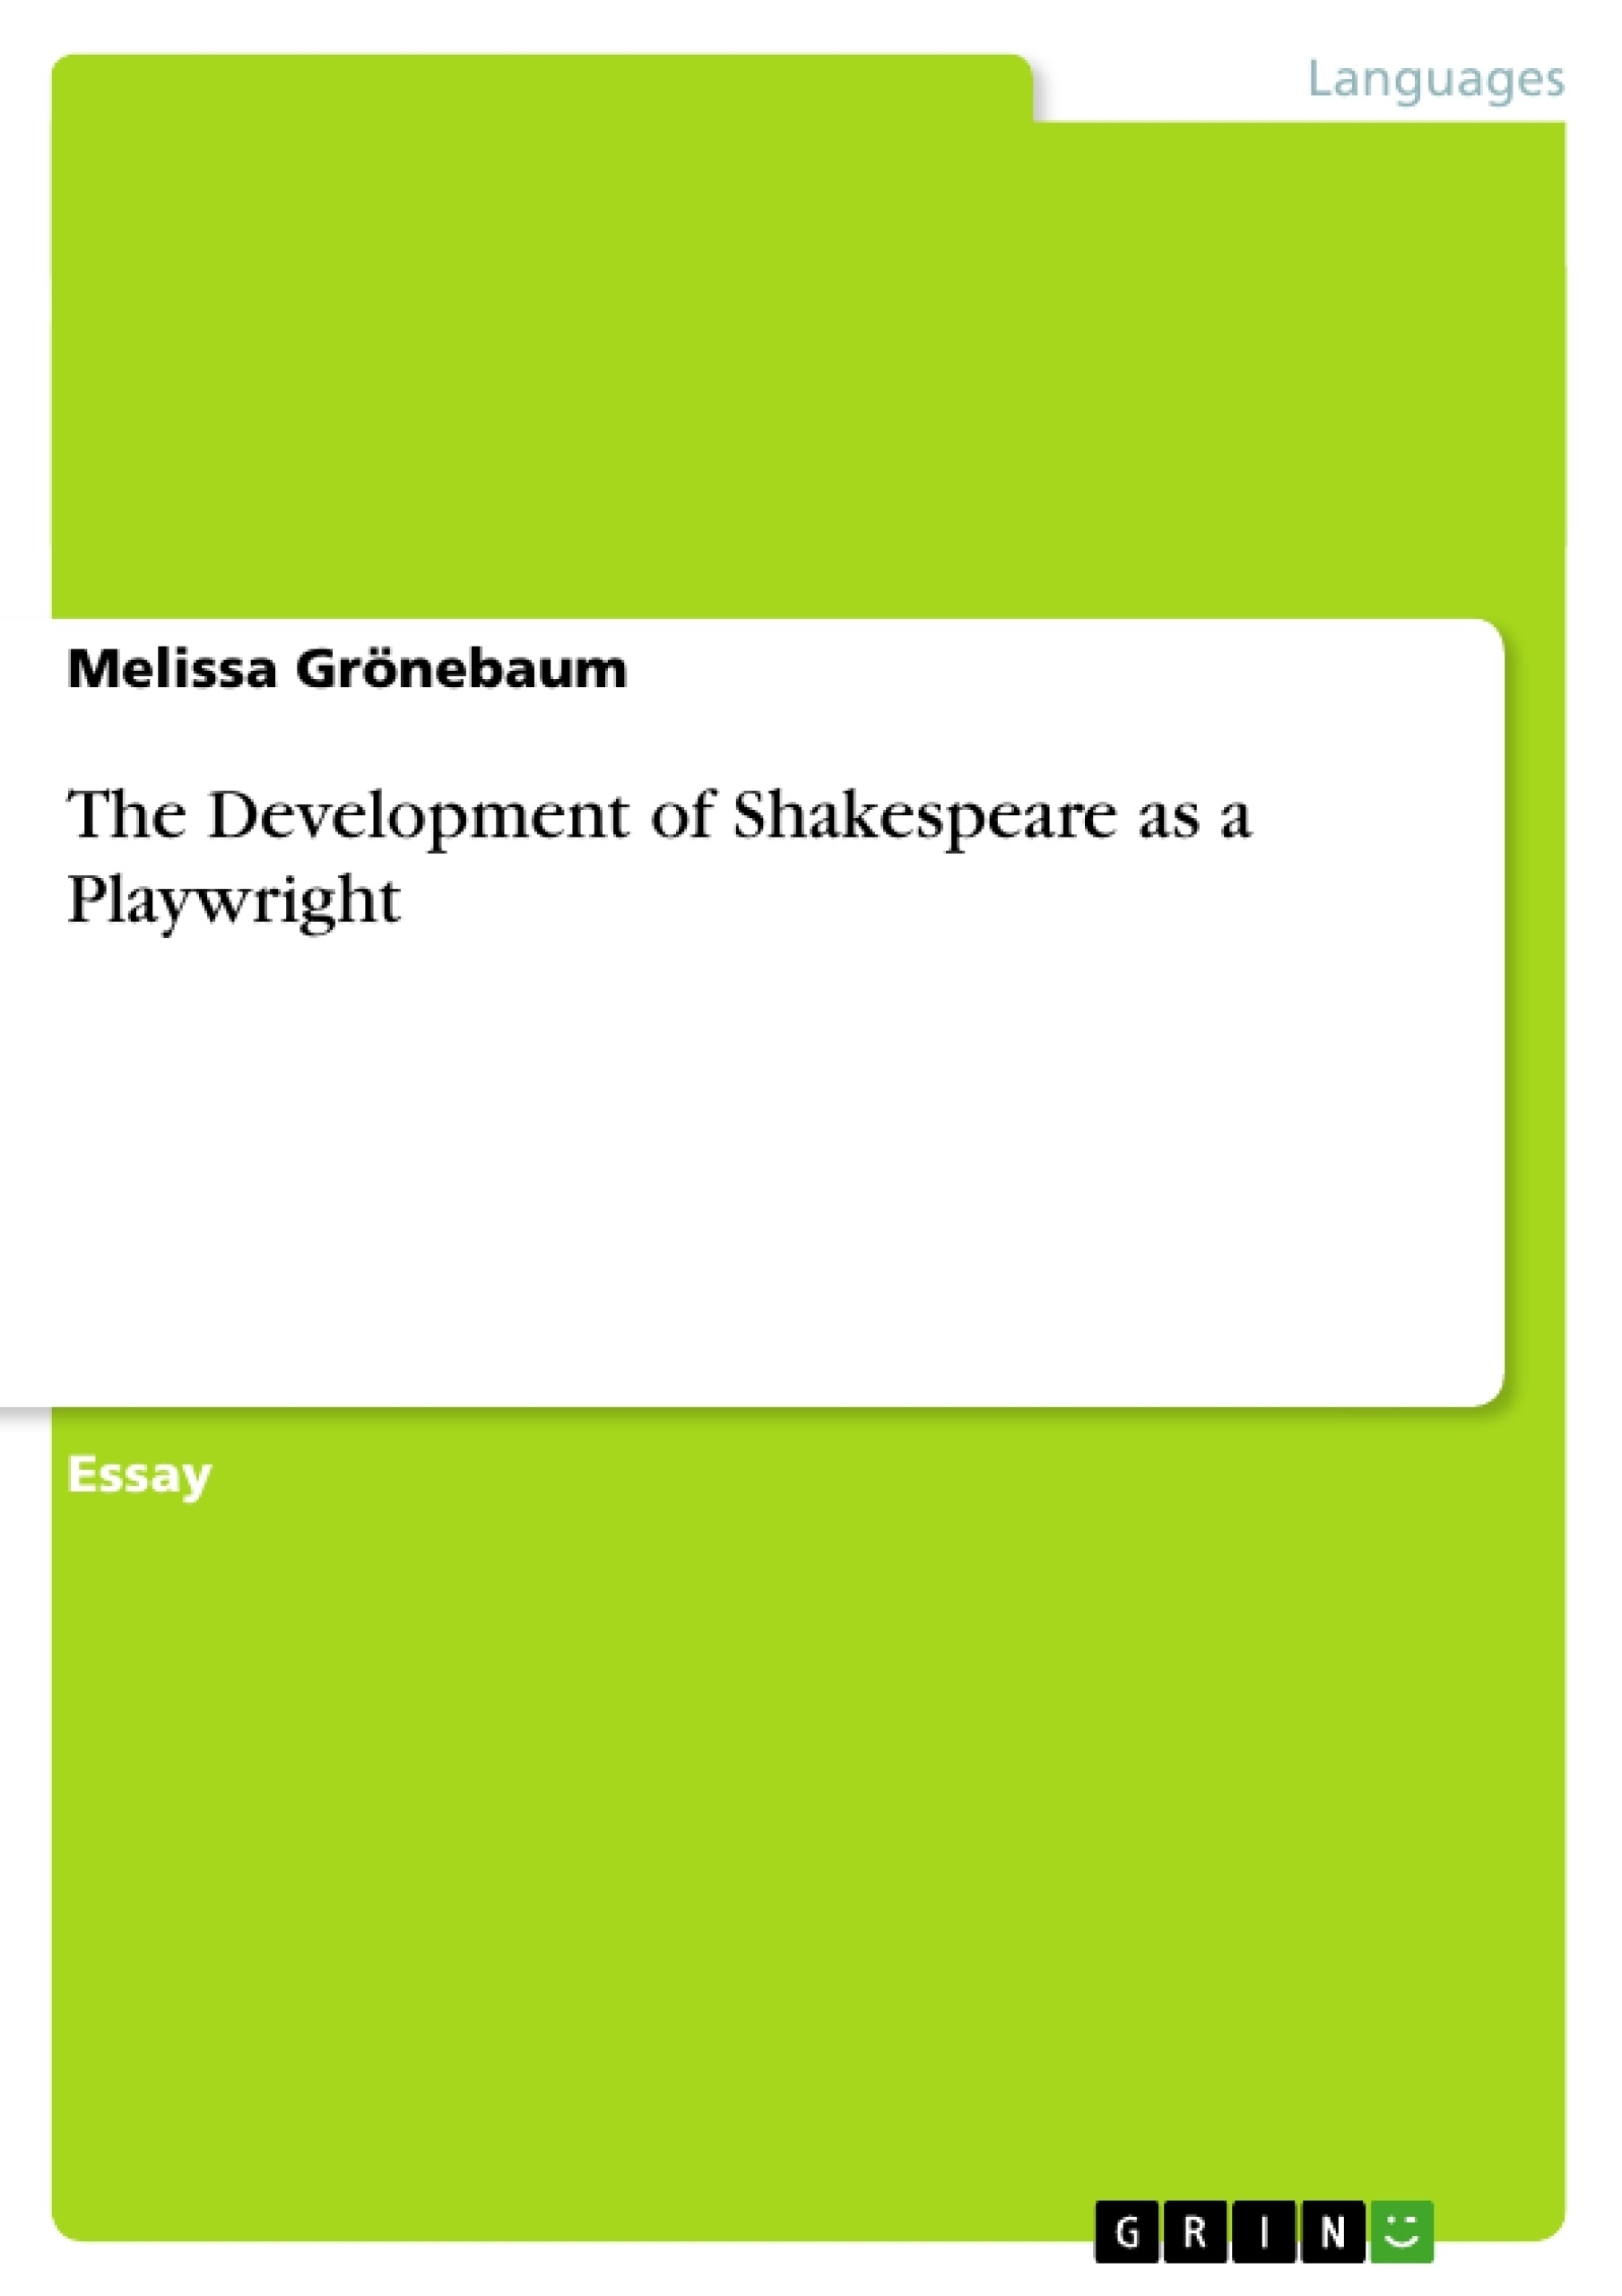 Title: The Development of Shakespeare as a Playwright